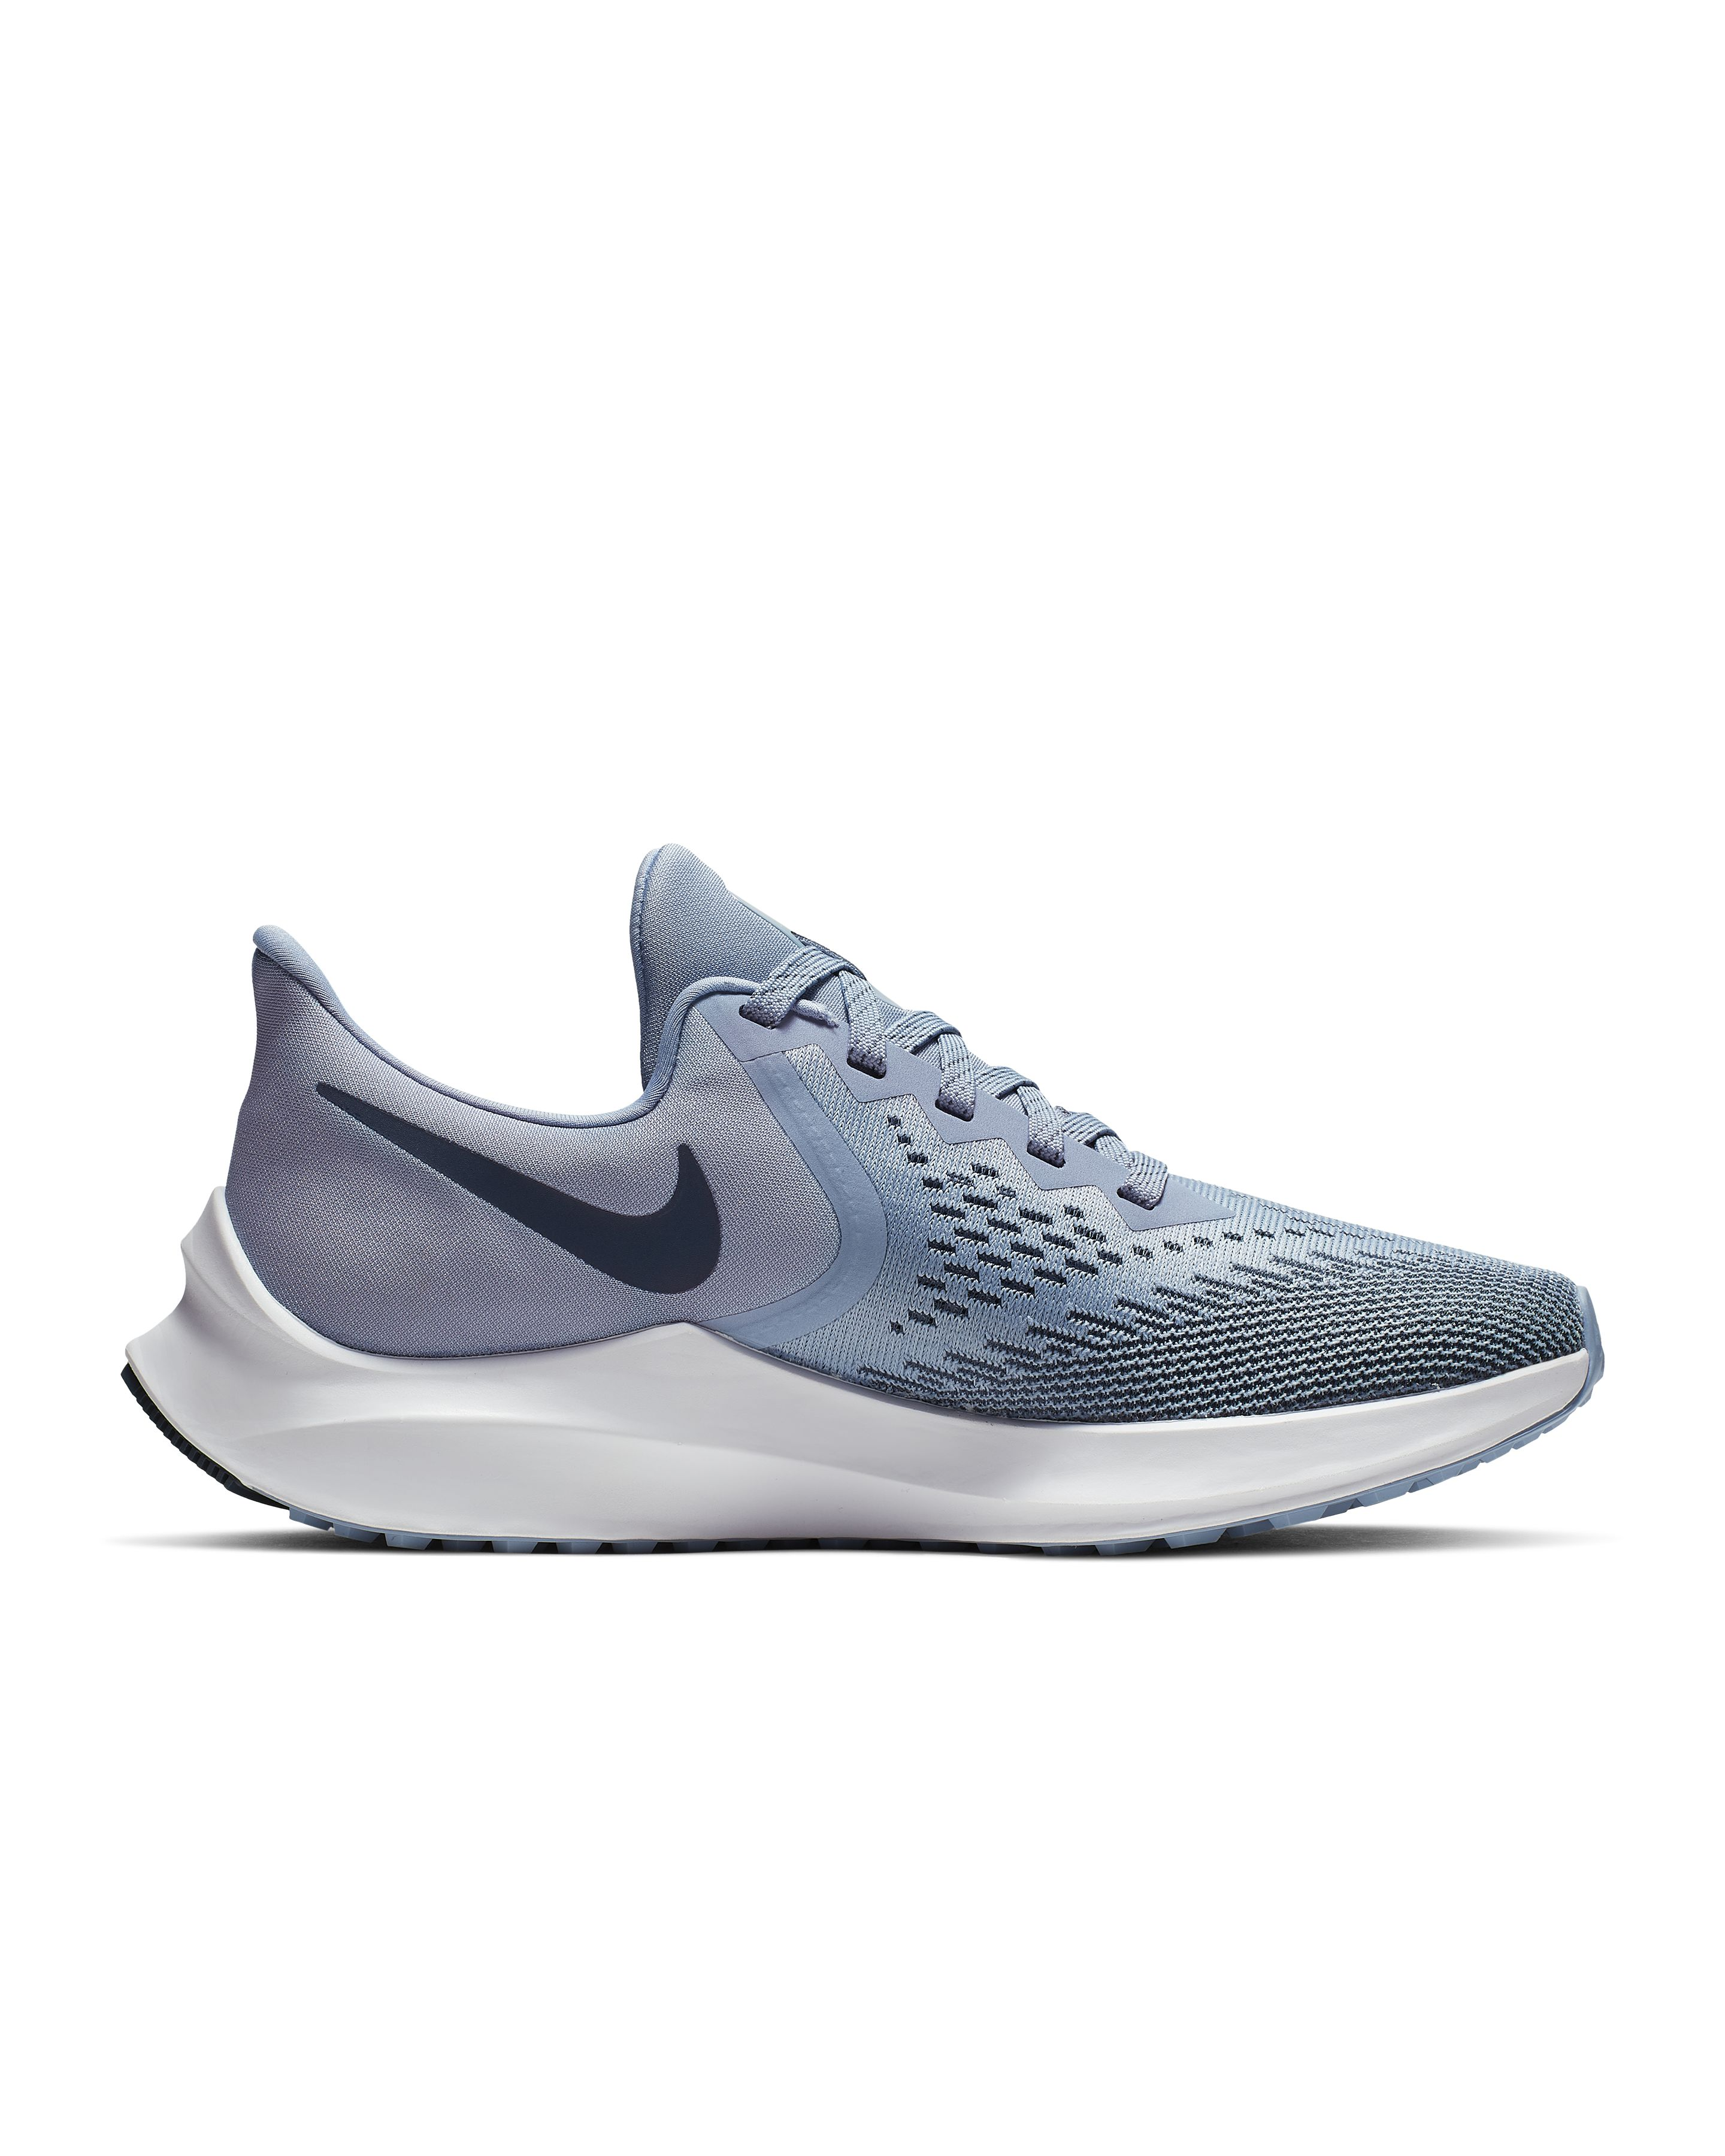 8458f8cdda77 Nike Running Shoes for Women – Best Running Shoes for Women 2019